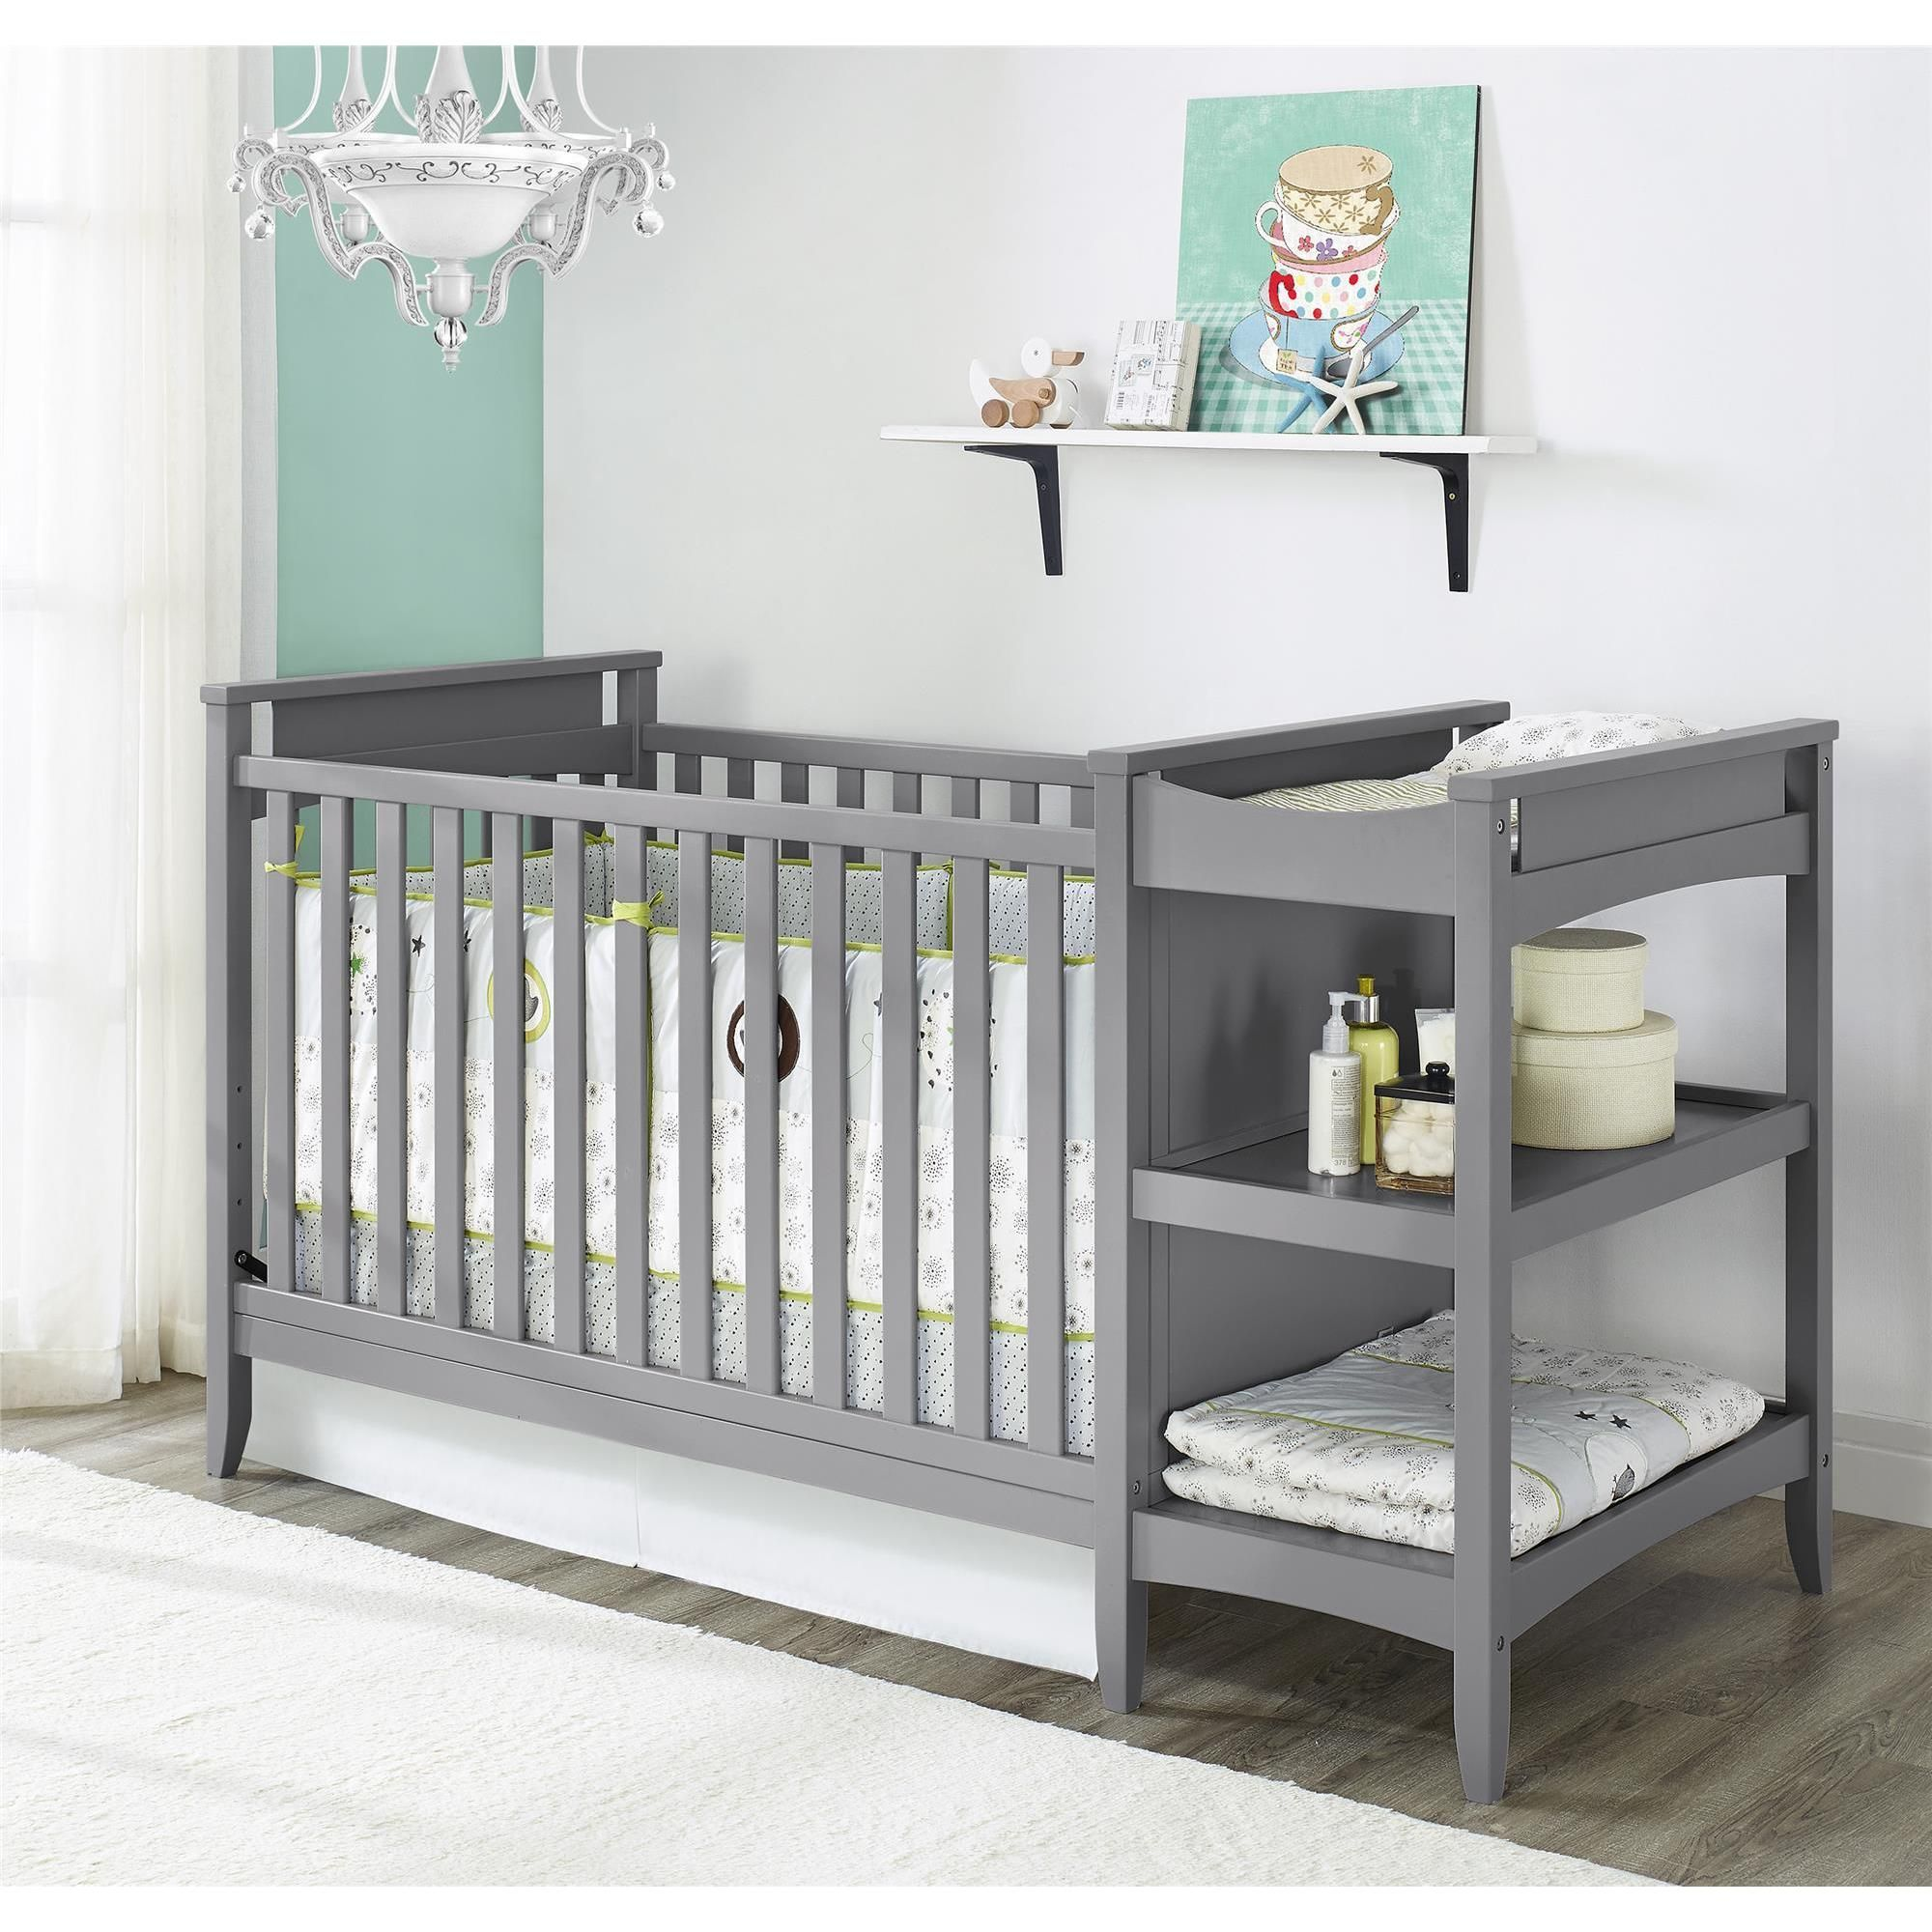 Baby cribs pictures - Baby Relax Emma Crib And Changing Table Combo By Dorel Asia